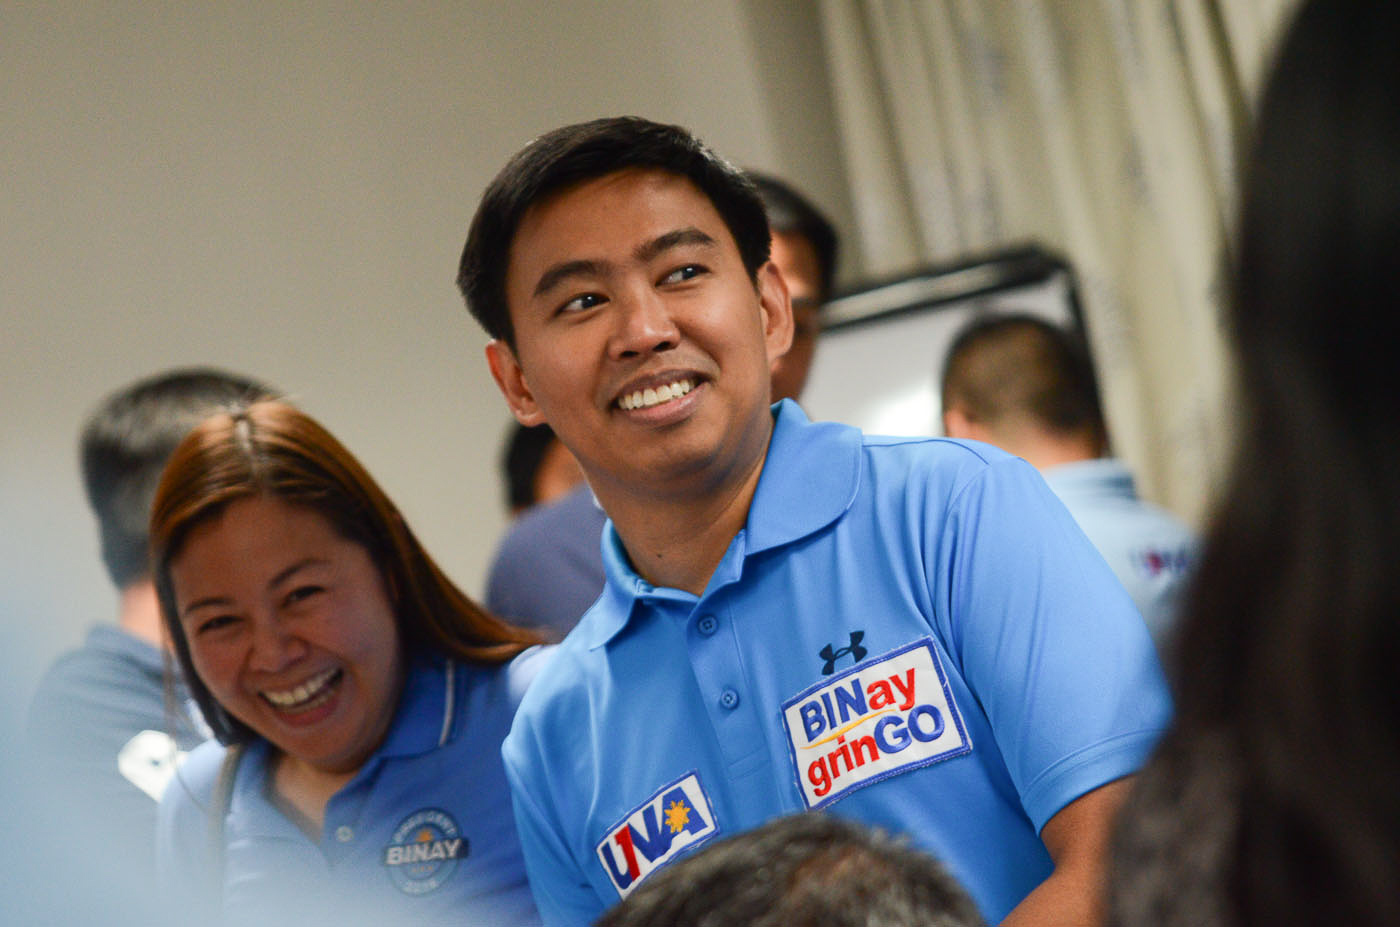 BINAY JR. Ousted Makati City mayor Junjun Binay joins his father, Vice President Jejomar Binay, during a press conference before the third presidential debate in Dagupan City on April 24. Photo by Alecs Ongcal/Rappler